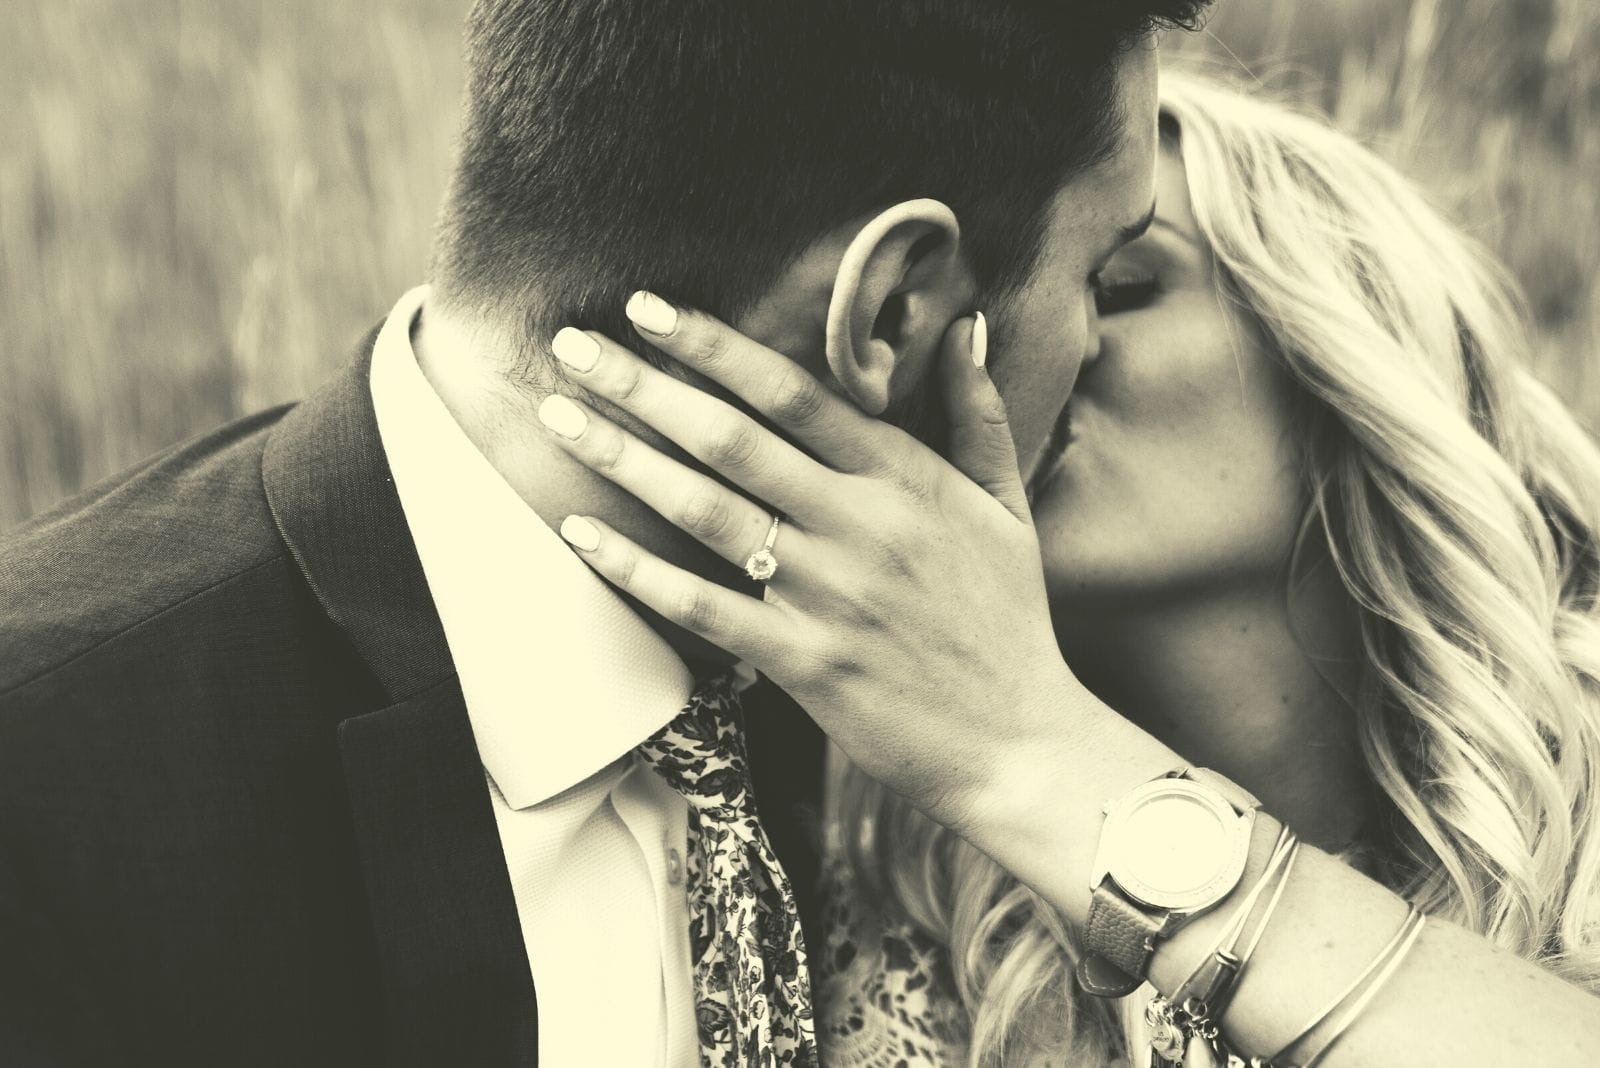 grayscale theme of kissing couple wearing formal wear outdoors